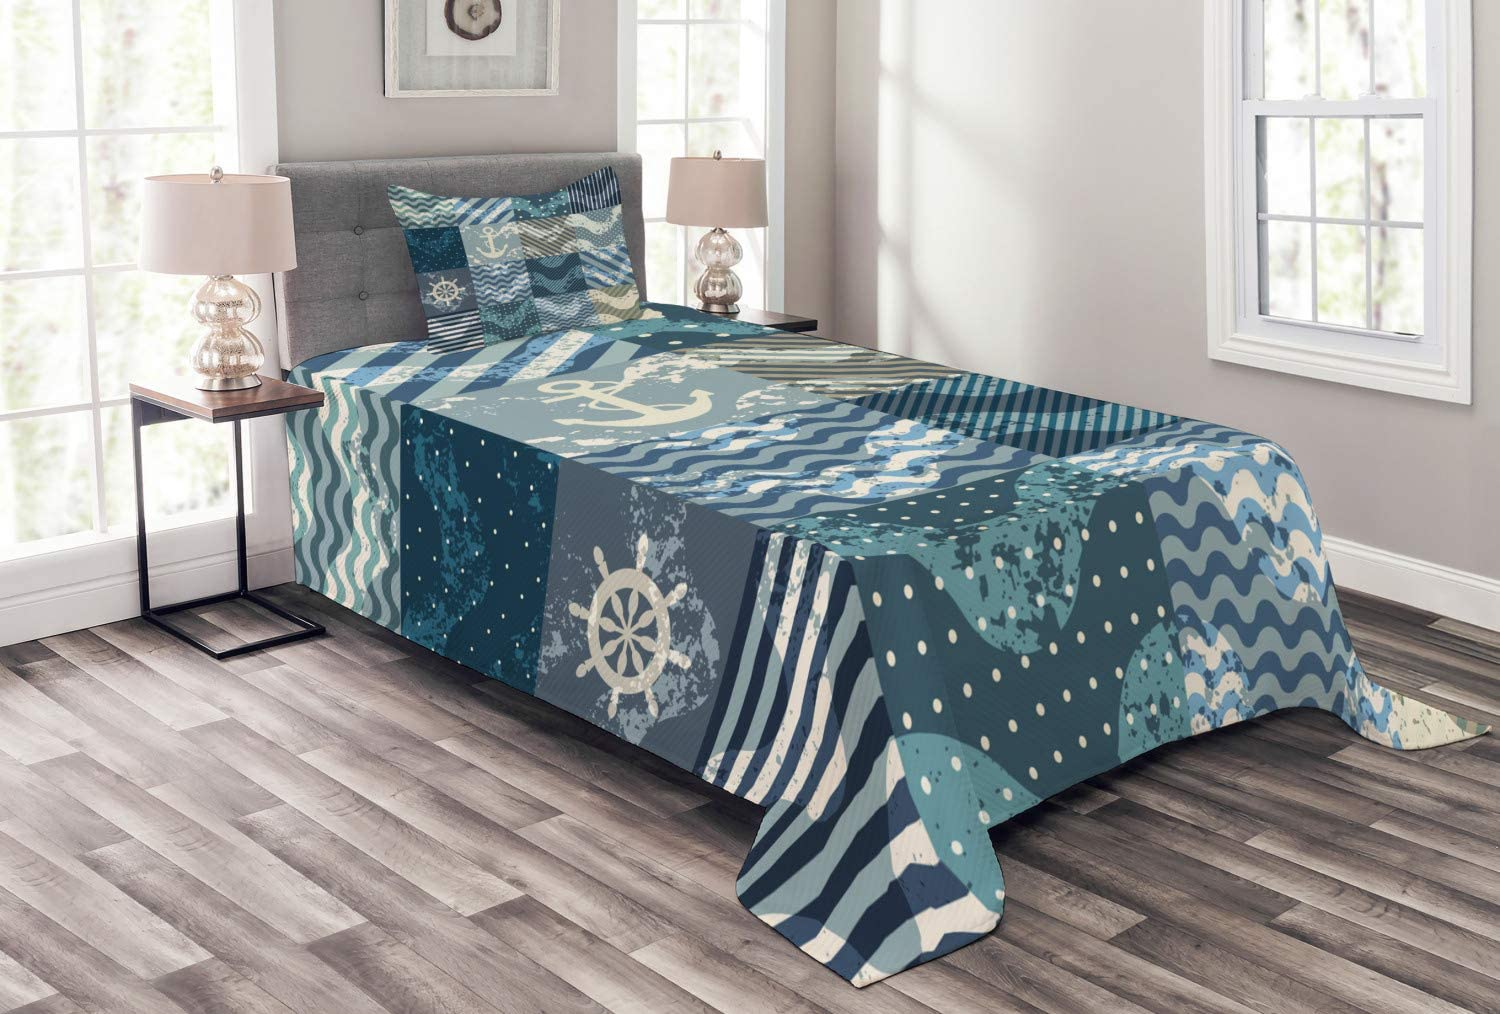 Ambesonne Nautical Bedspread, Marine Theme Wave Patterns in Patchwork Style Boxes Squares Striped Anchor Print, Decorative Quilted 2 Piece Coverlet Set with Pillow Sham, Twin Size, Blue Beige